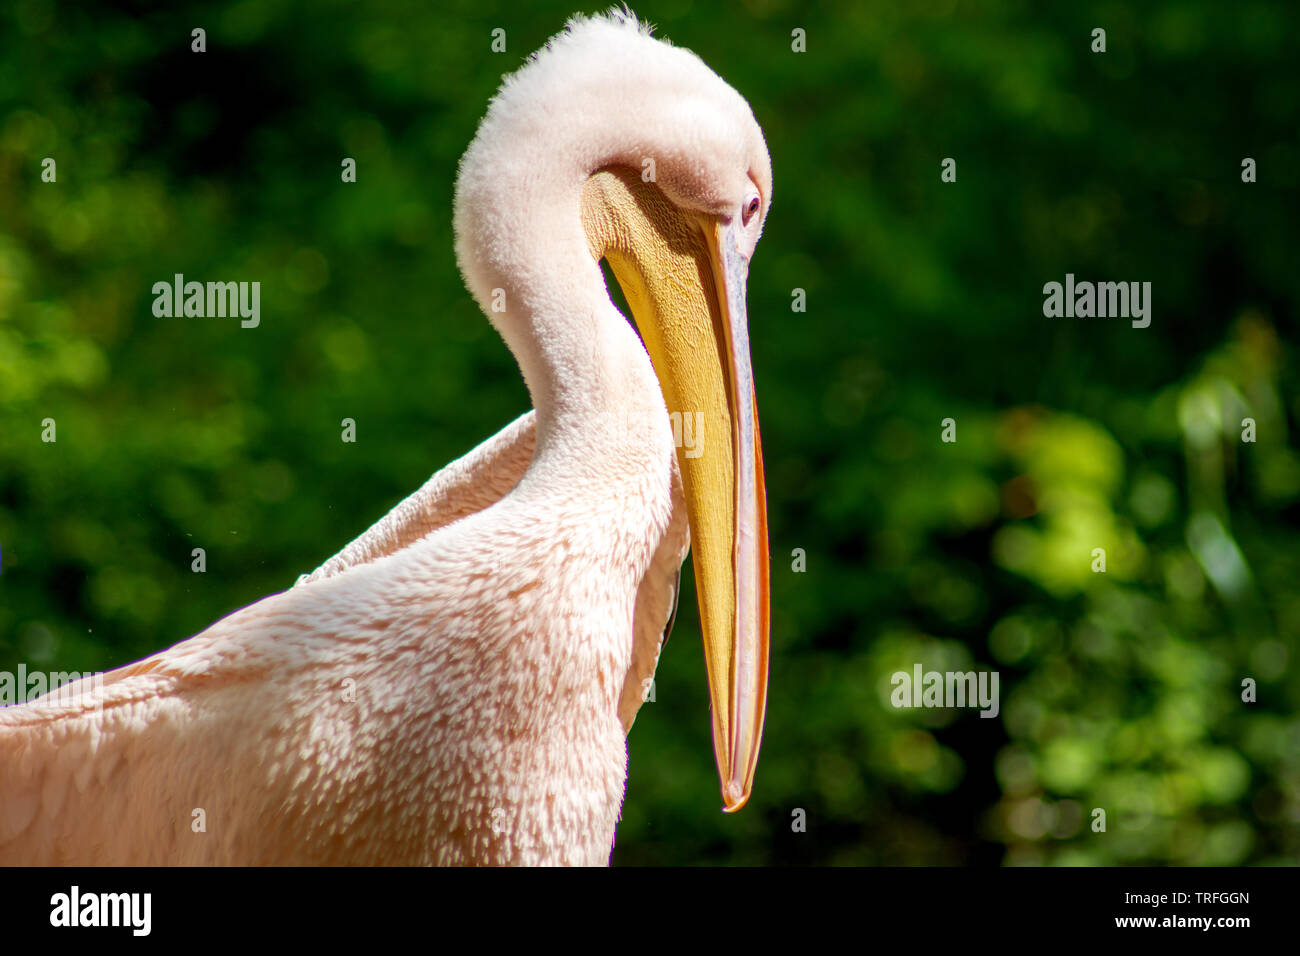 The Pelican - Stock Image